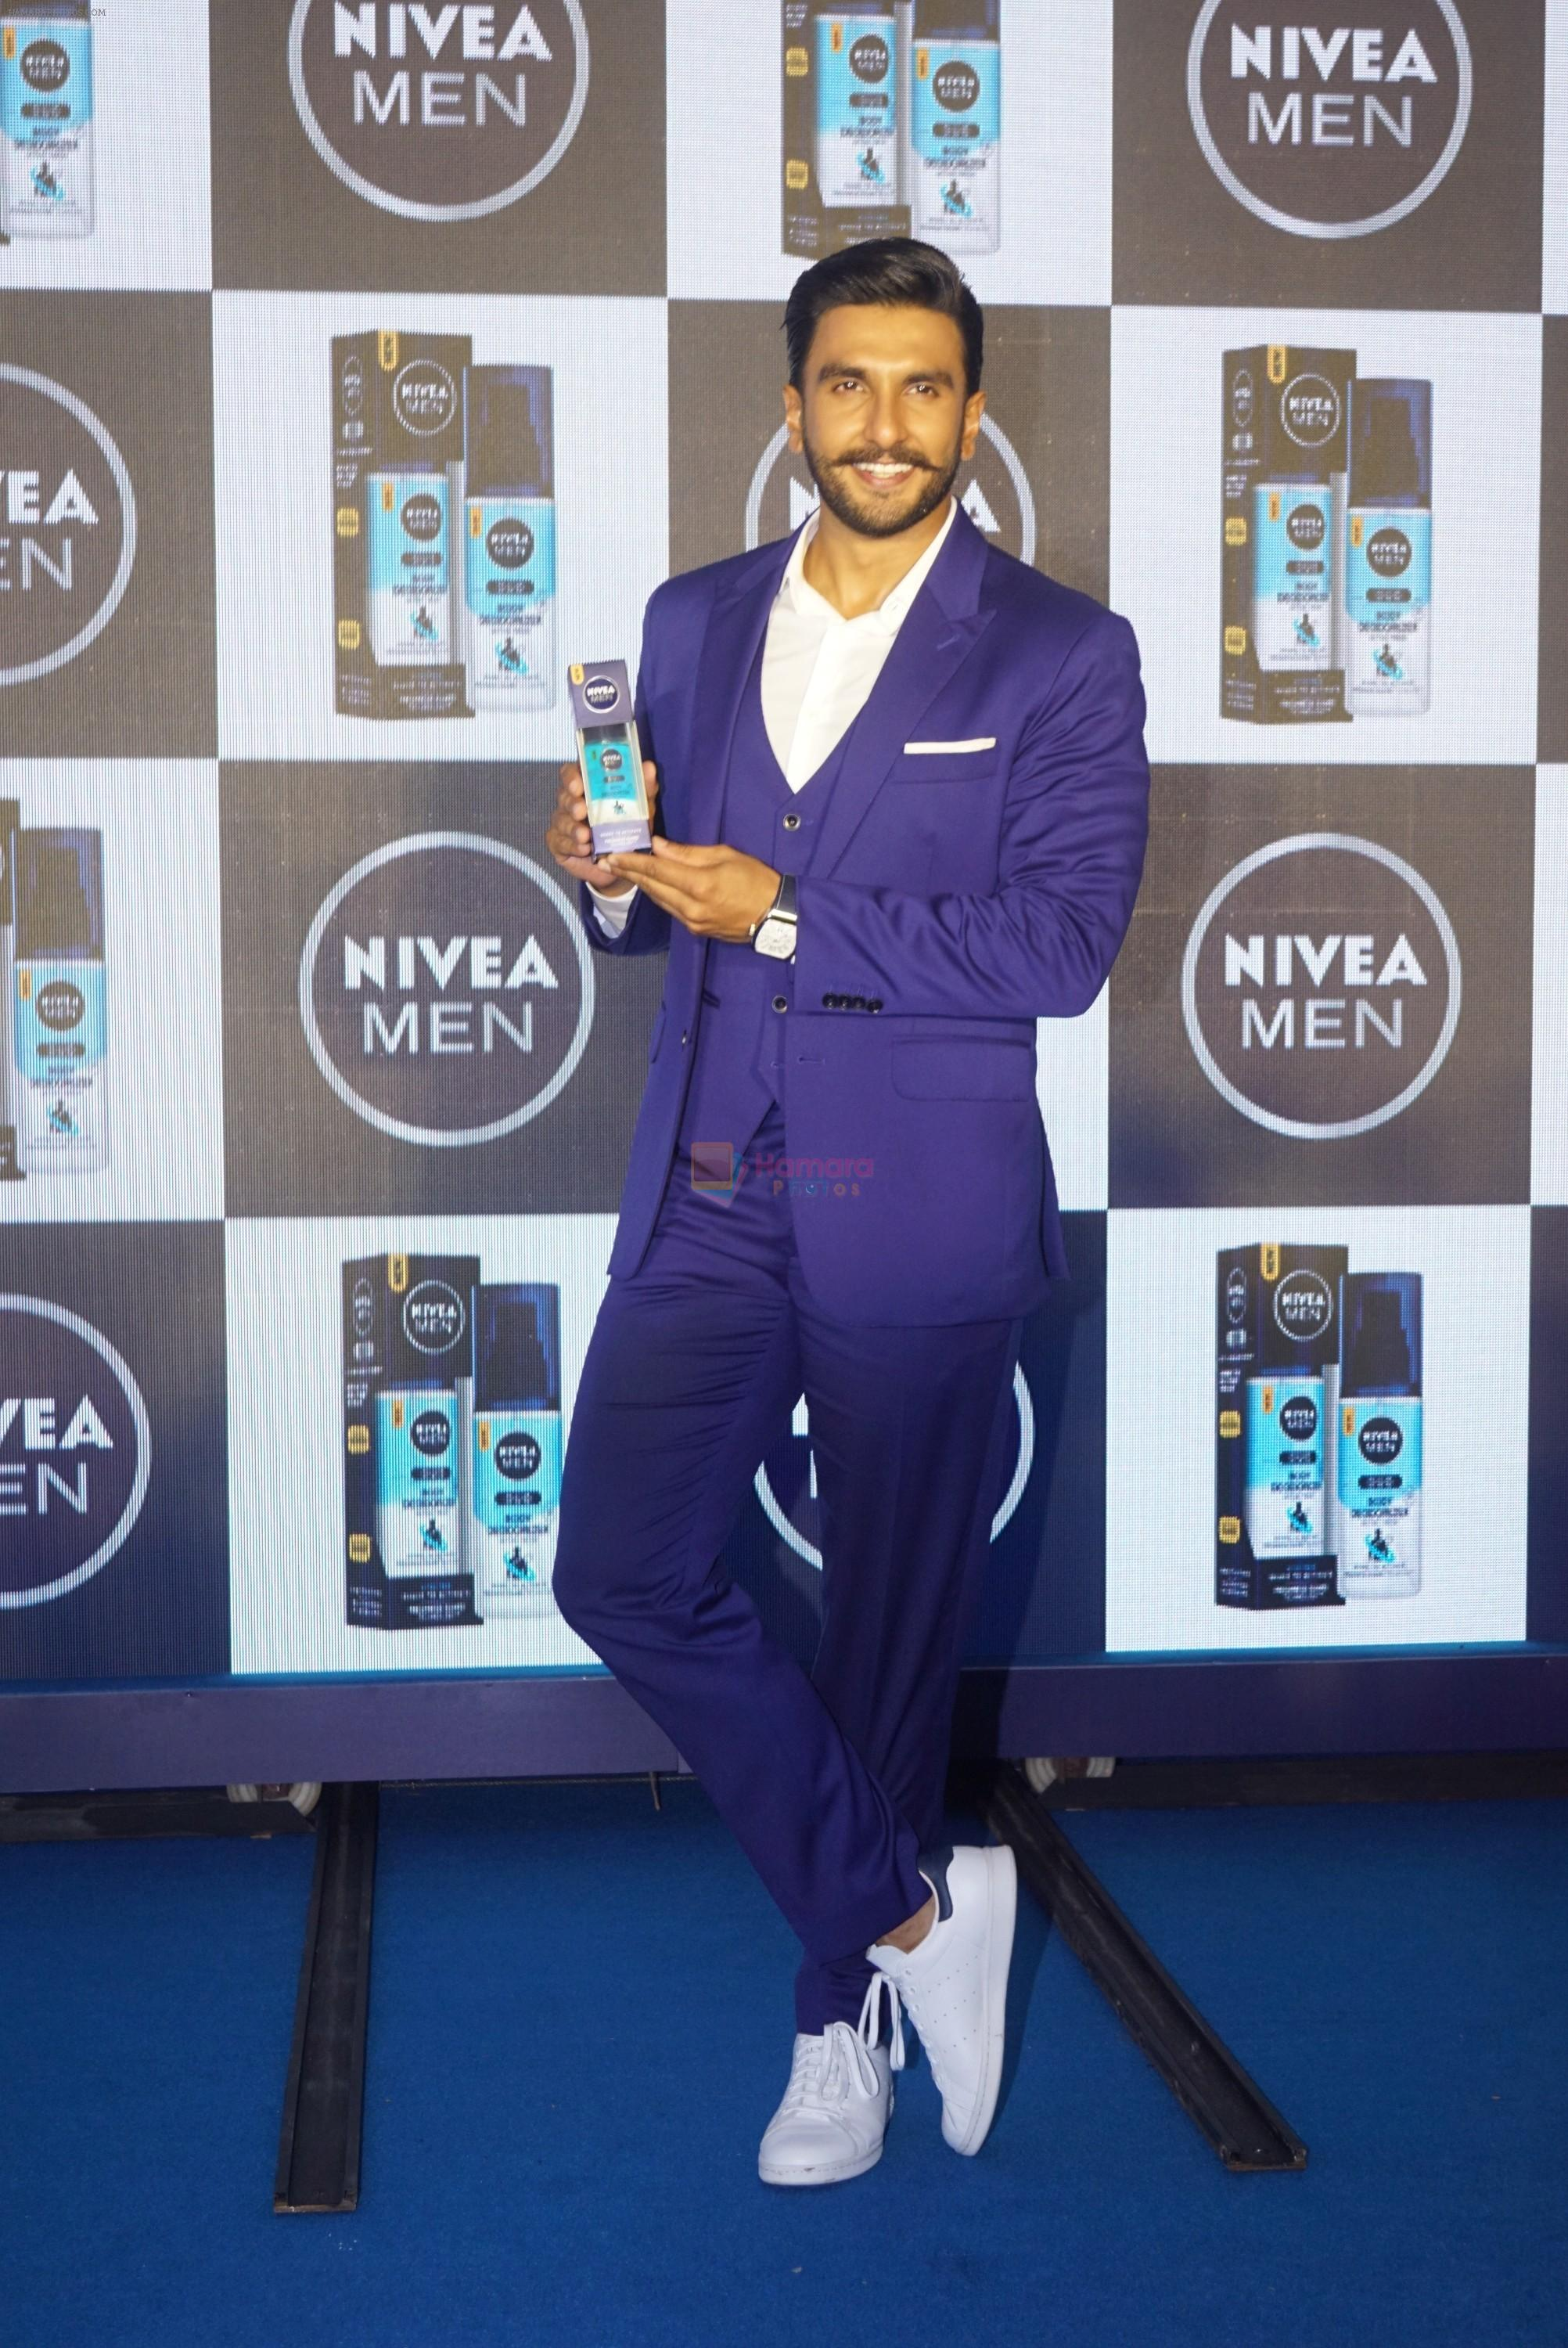 Ranveer singh announced as new face of NIVEA Men on 4th Aug 2018